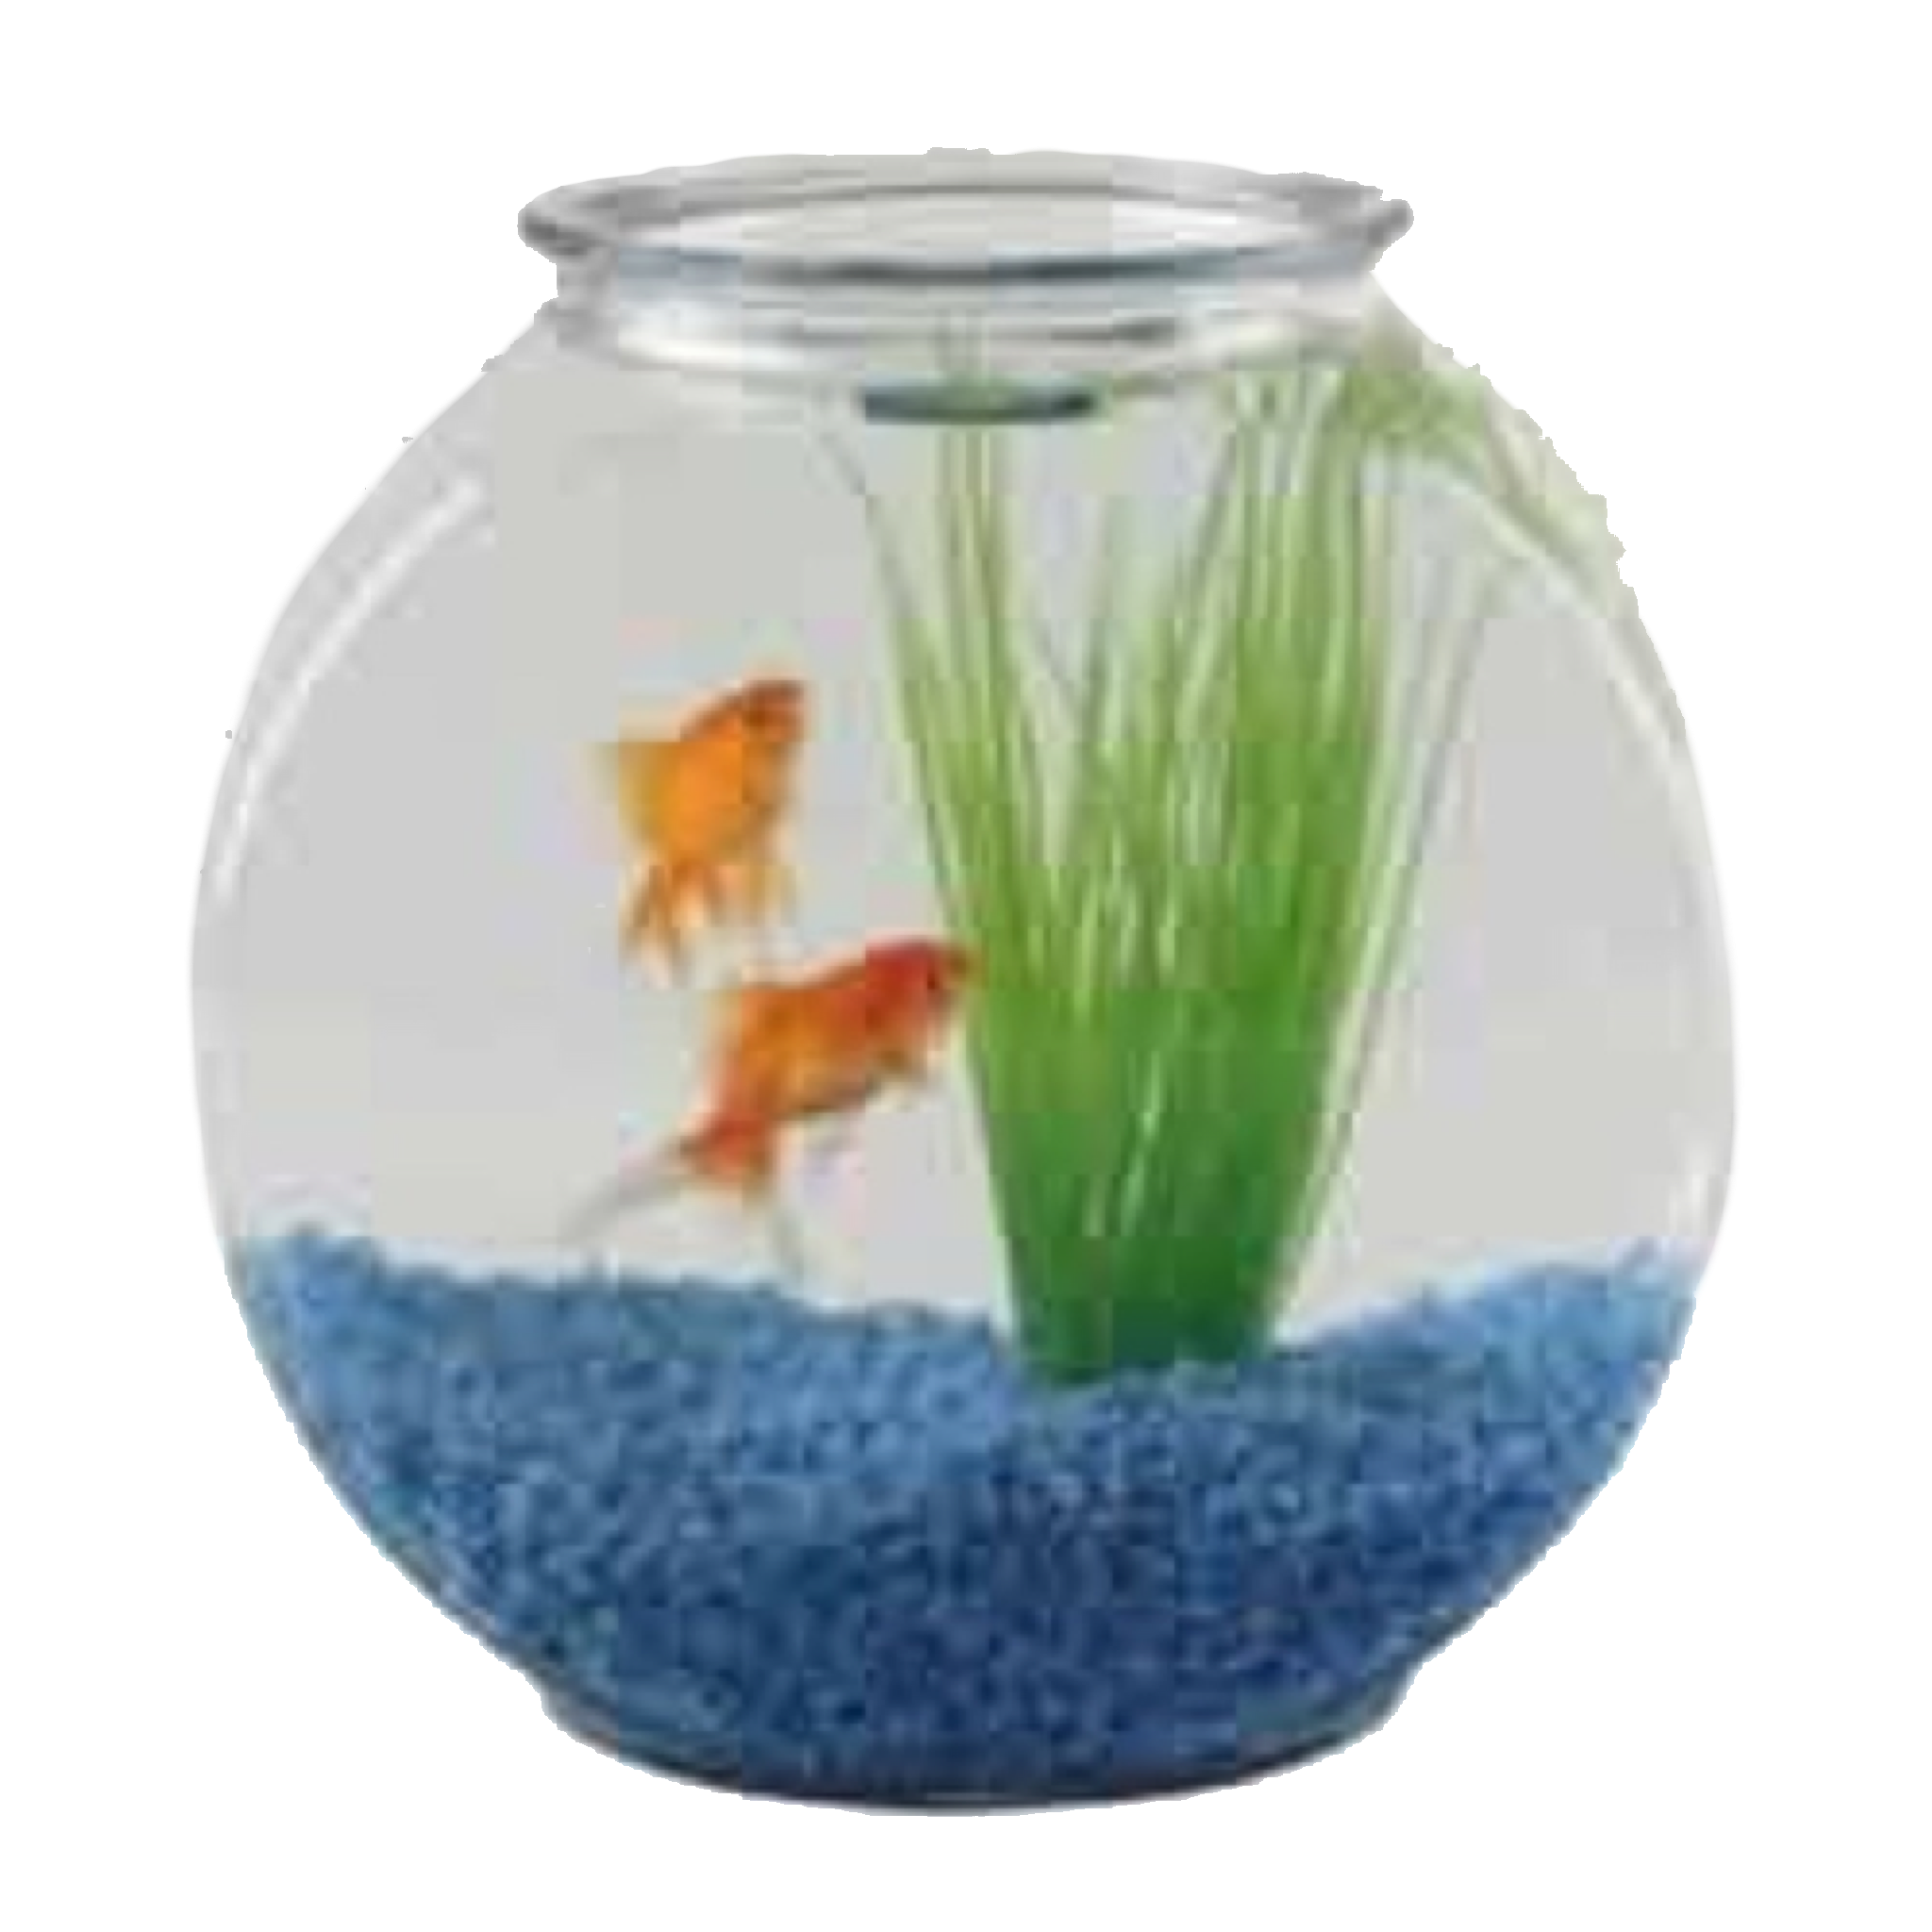 Pin By Lily On Filler Png Goldfish Cool Fish Tanks Fish Bowl